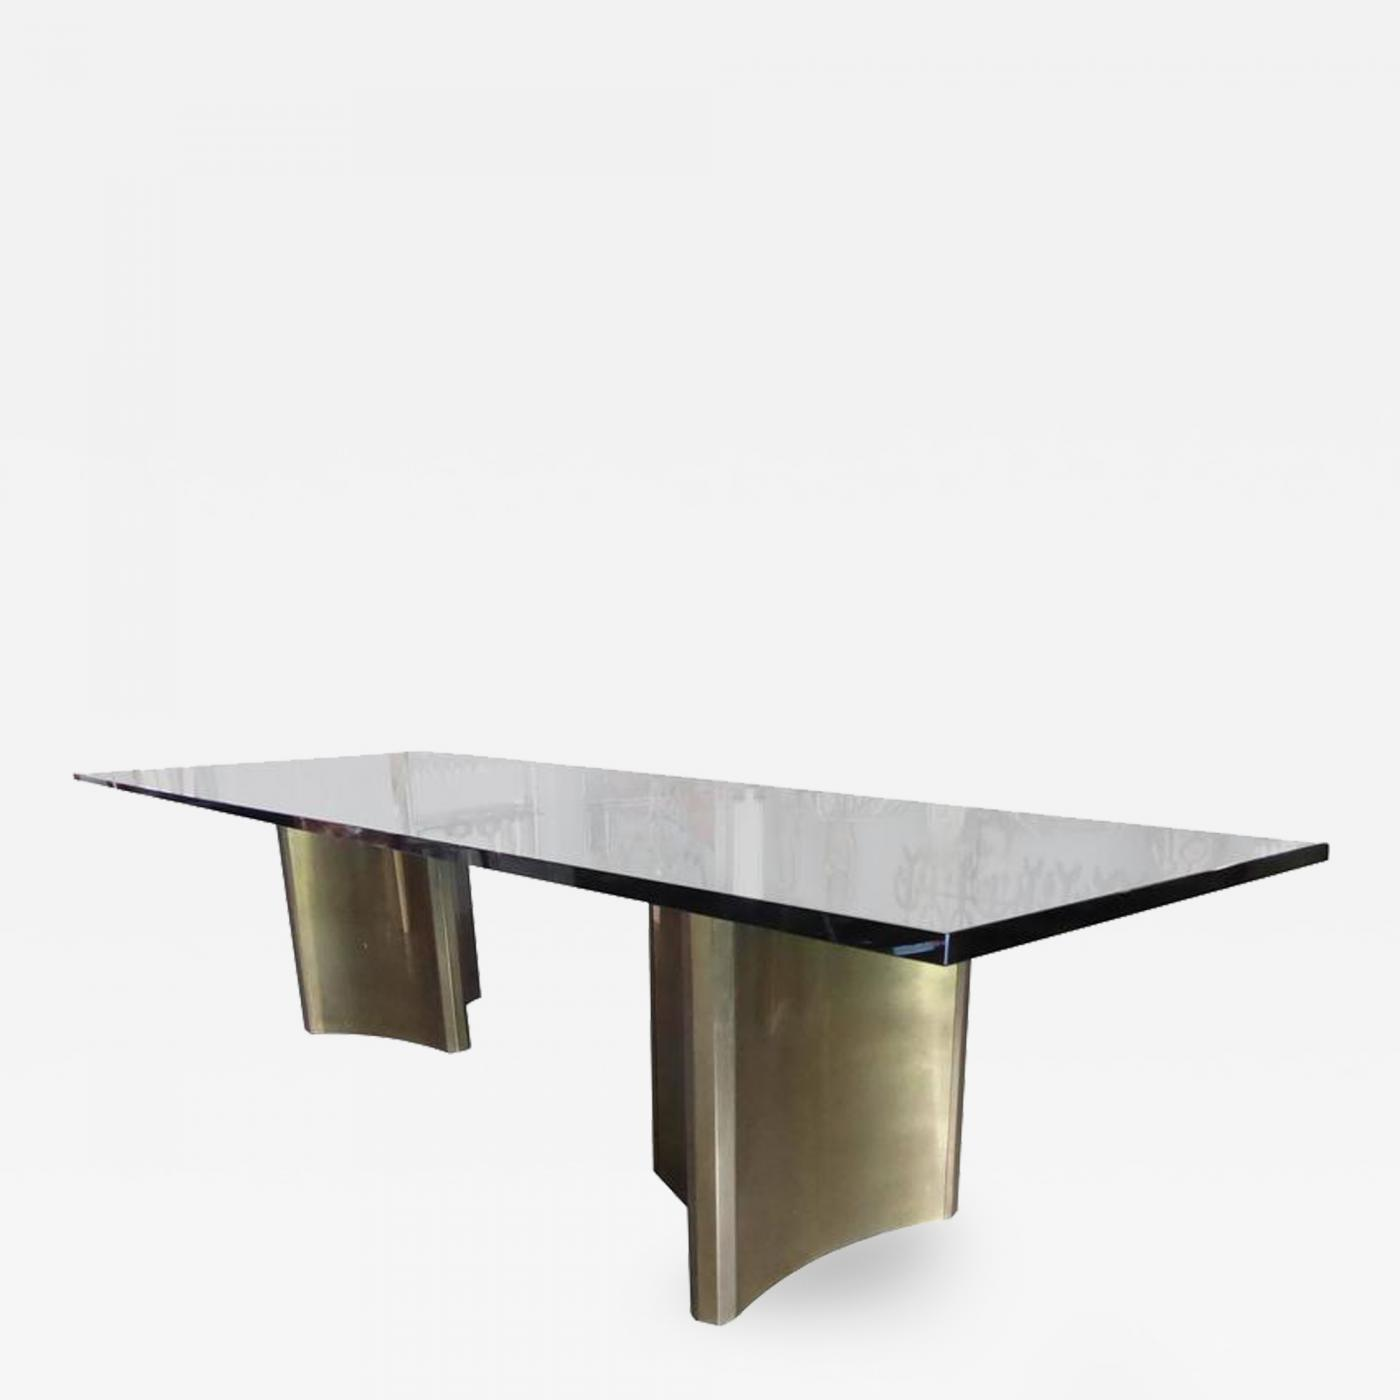 Mastercraft brass dining table - Listings Furniture Tables Dining Tables